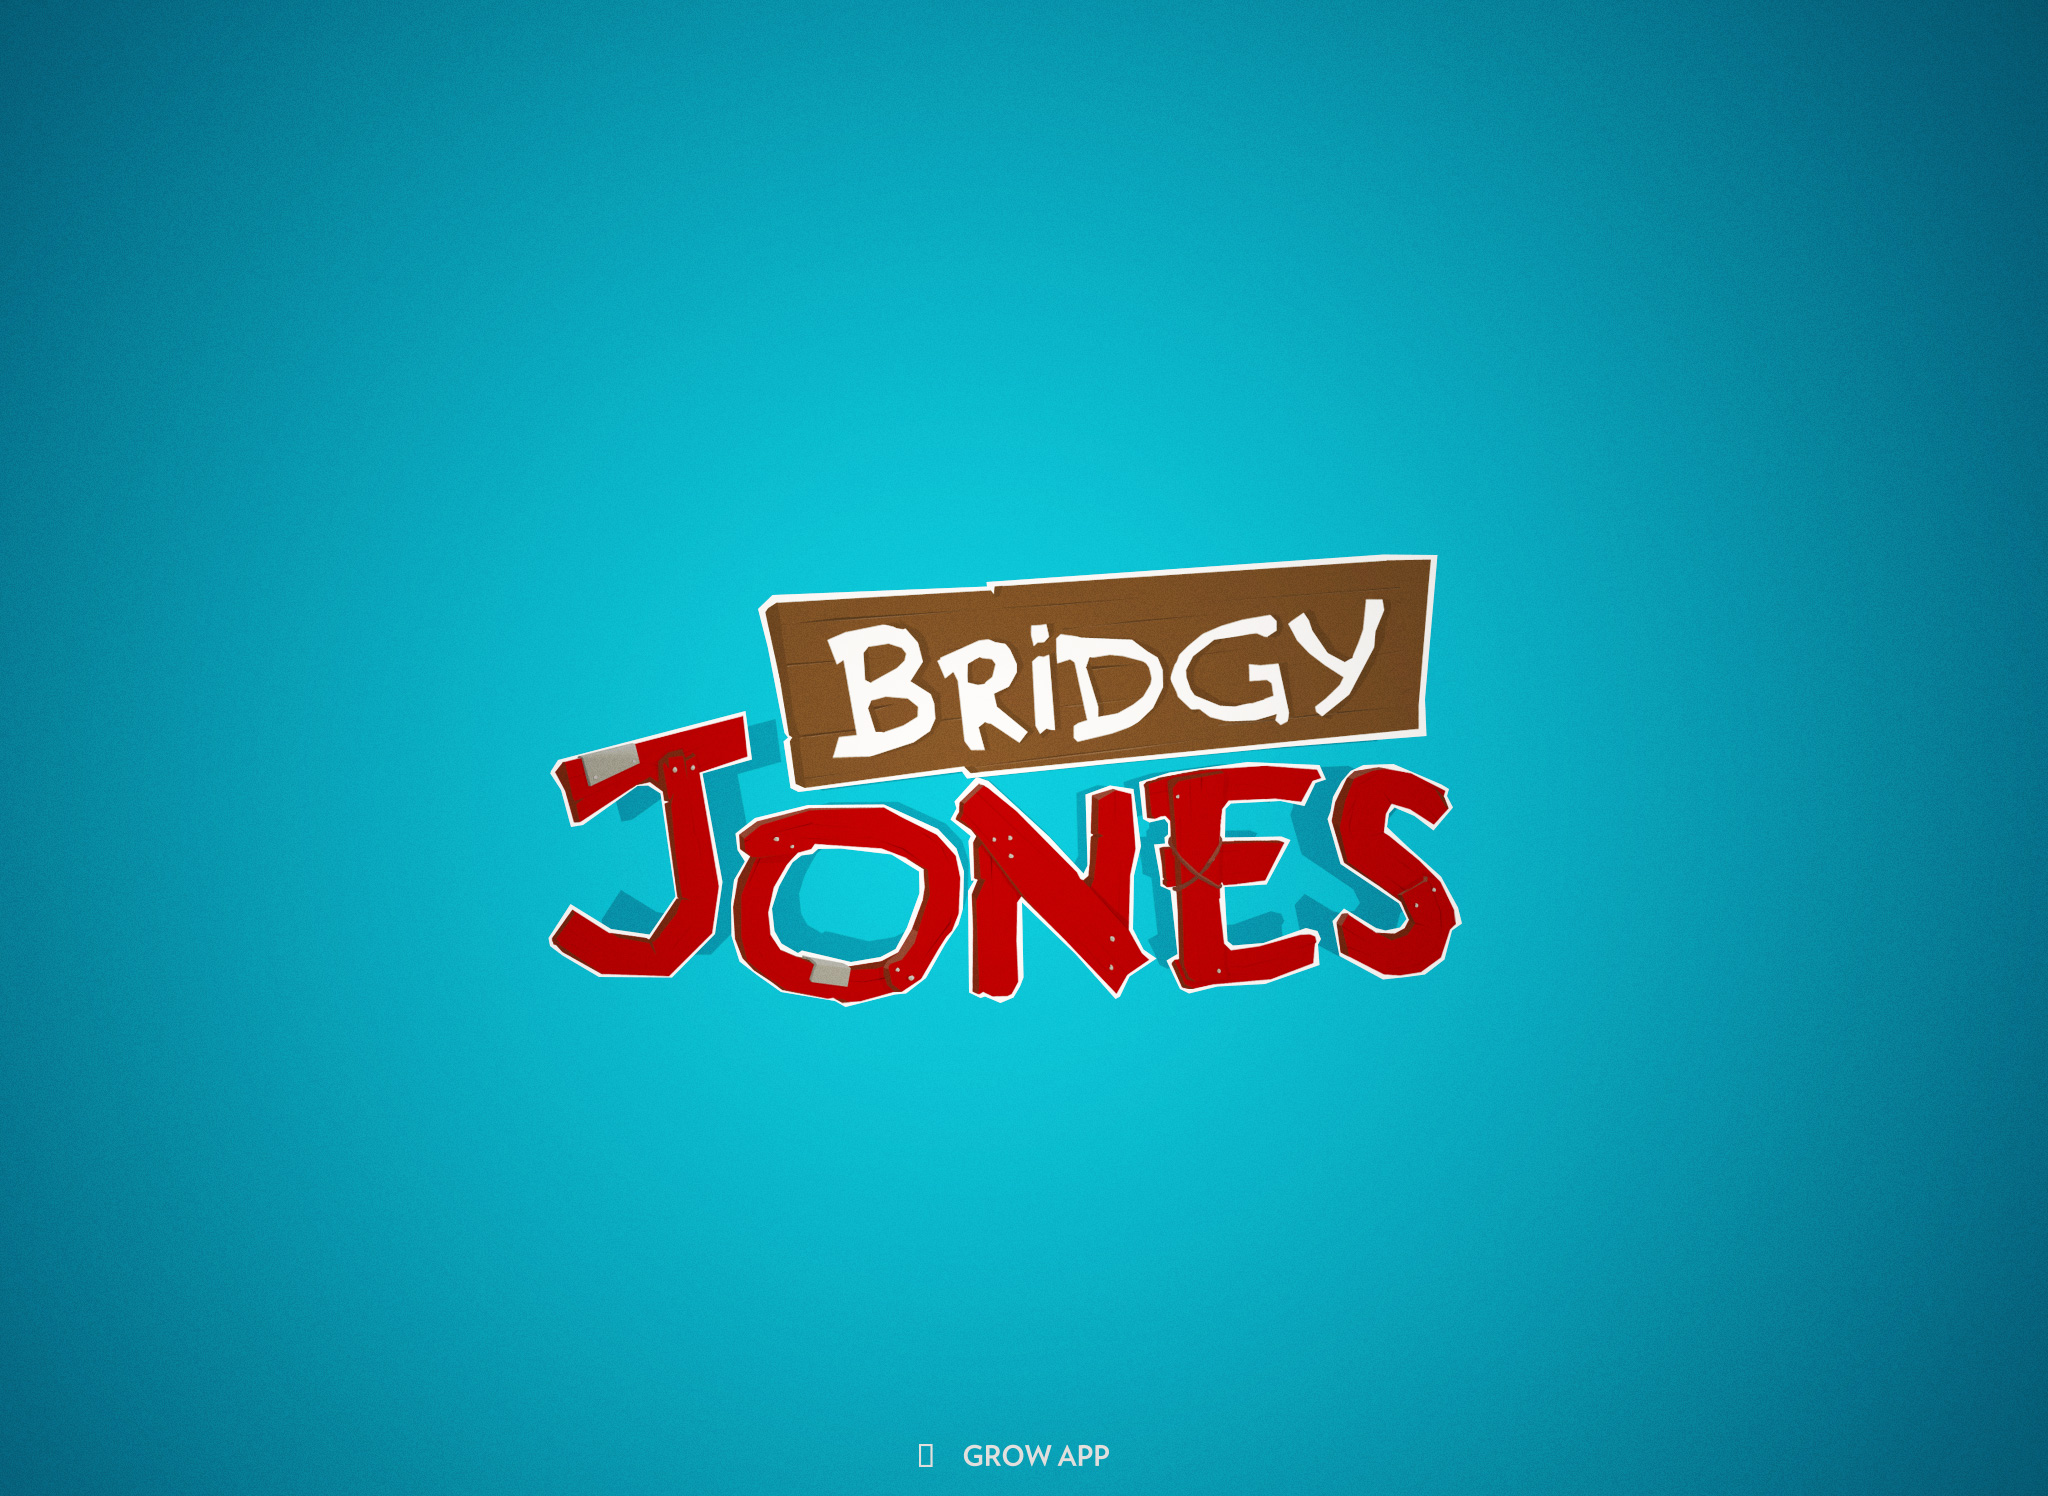 Bridgy Jones - iOS (iPhone, iPad, iPod touch)